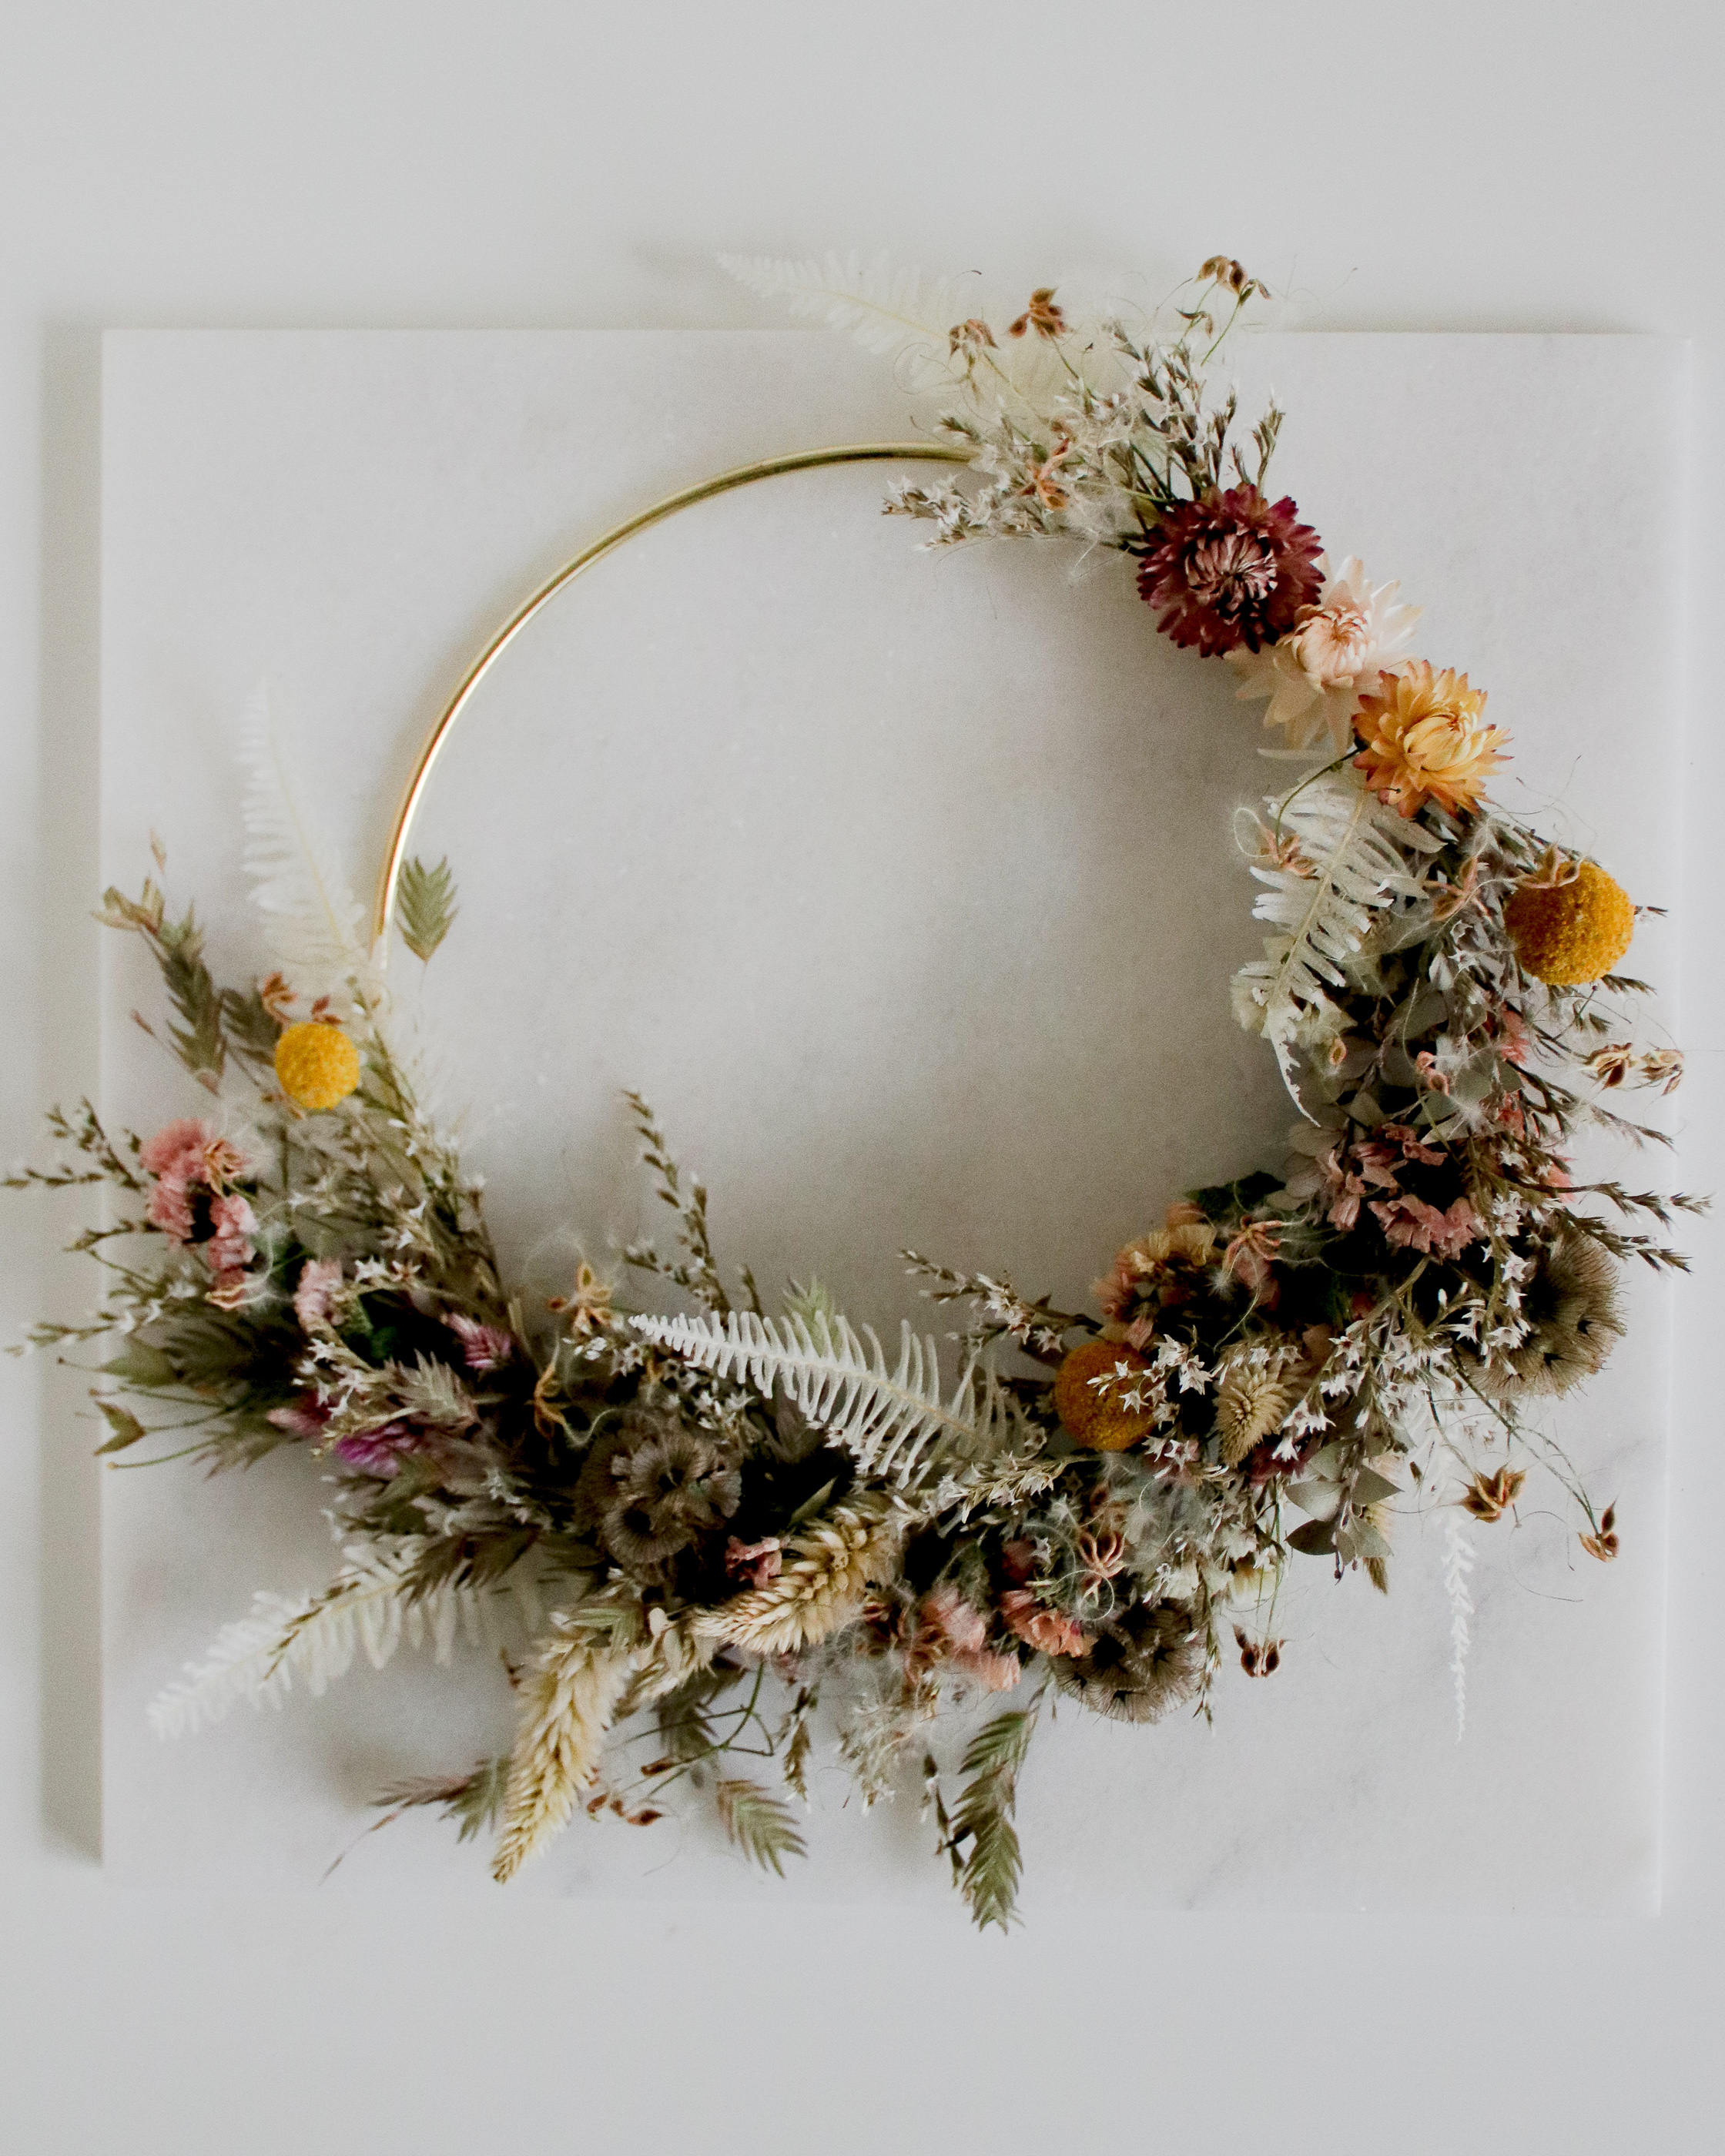 Dried Flower Wreath Willa Rose Floral - $60